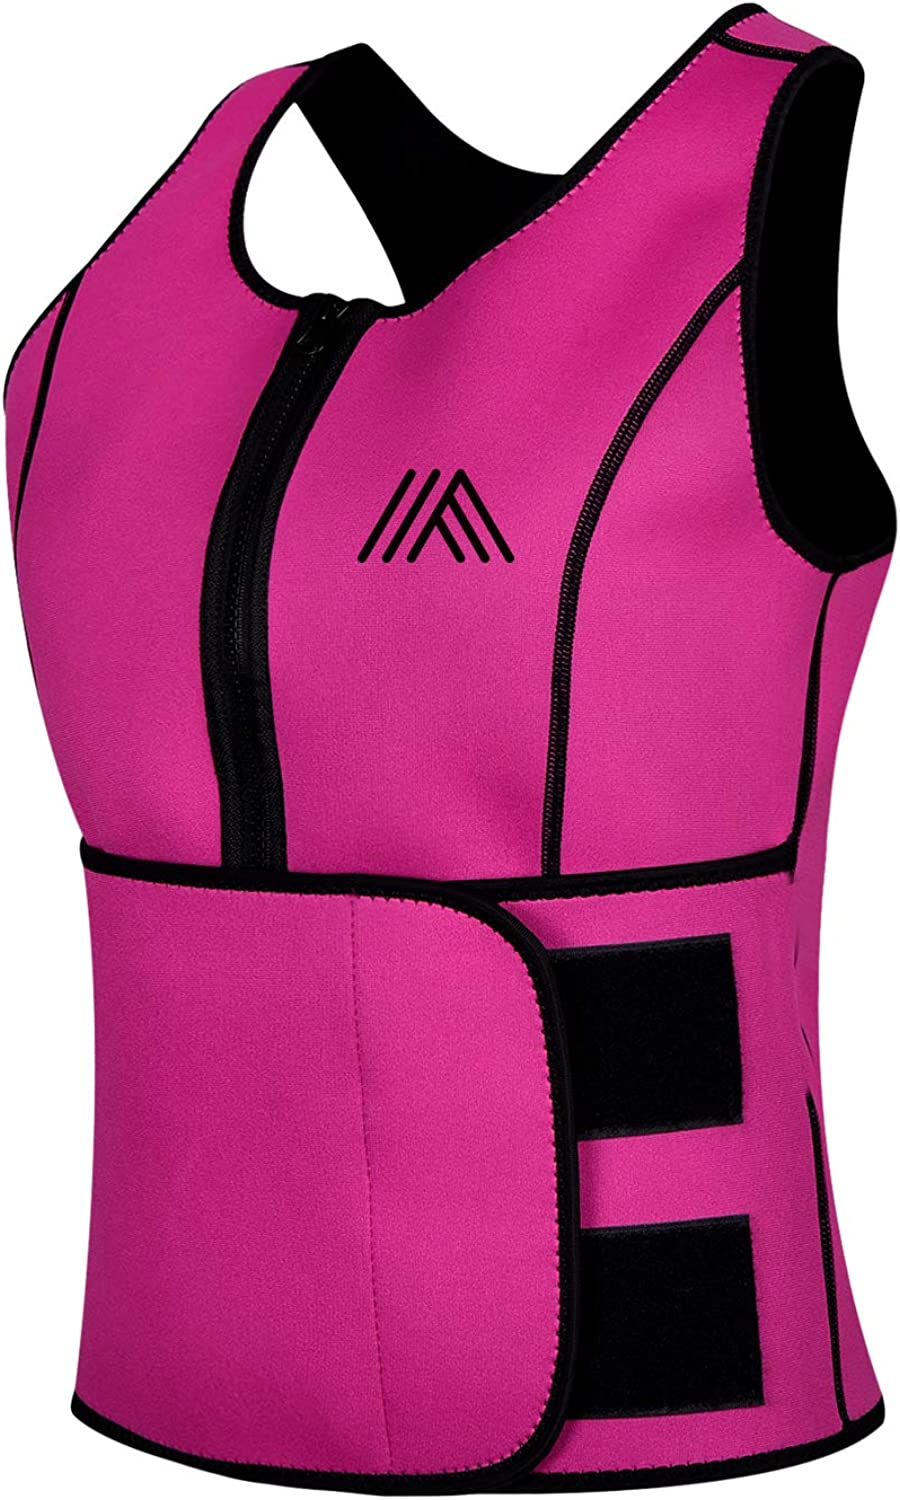 AQUIVA Neoprene Sweat Sauna Suit Trainer Vest for Women with Adjustable Waist Trimmer Belt for Weight Loss